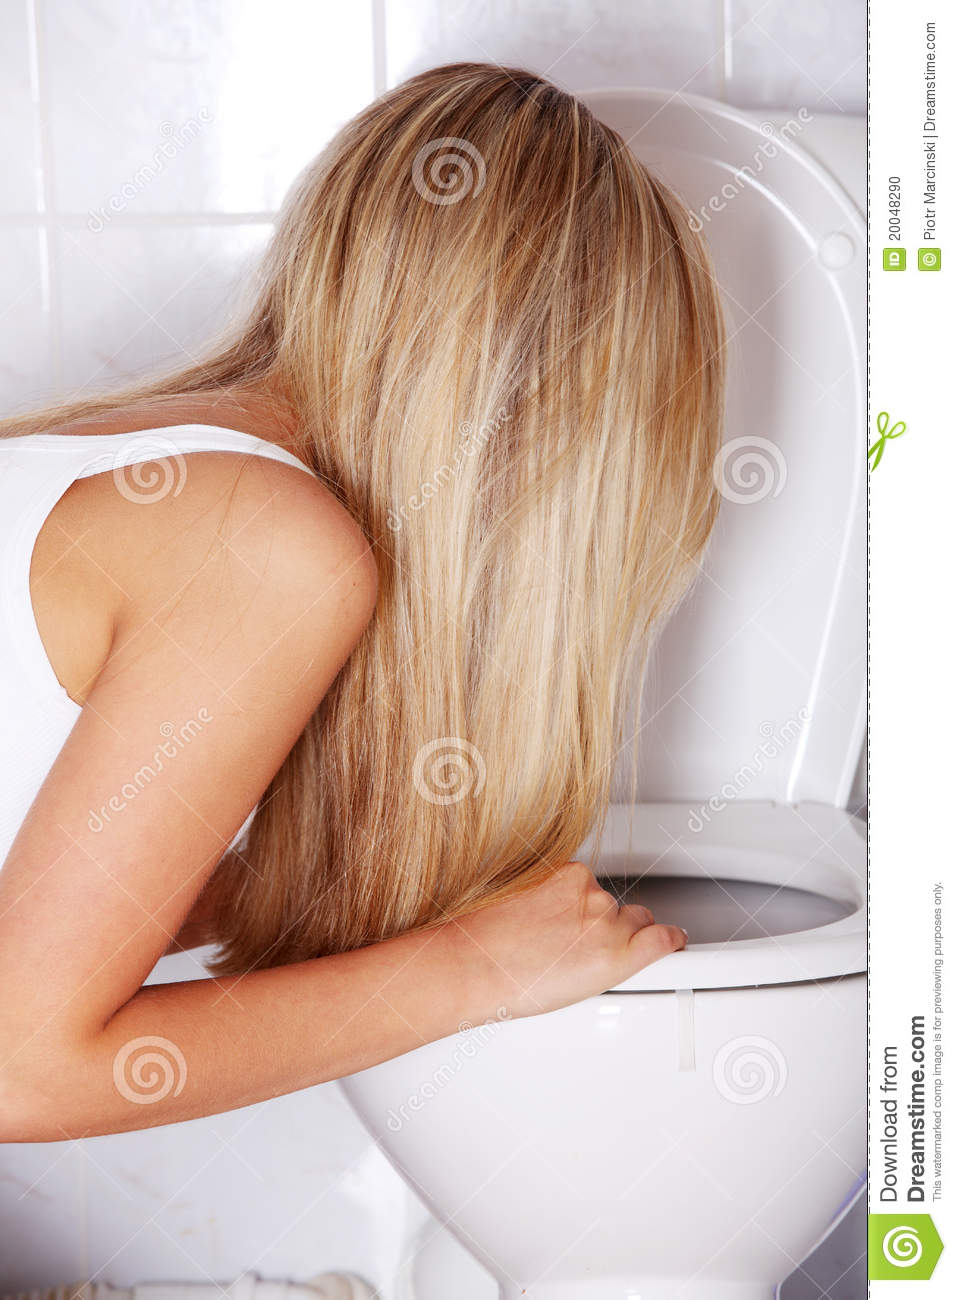 Young Teen Woman Vomiting Stock Photo Image 20048290